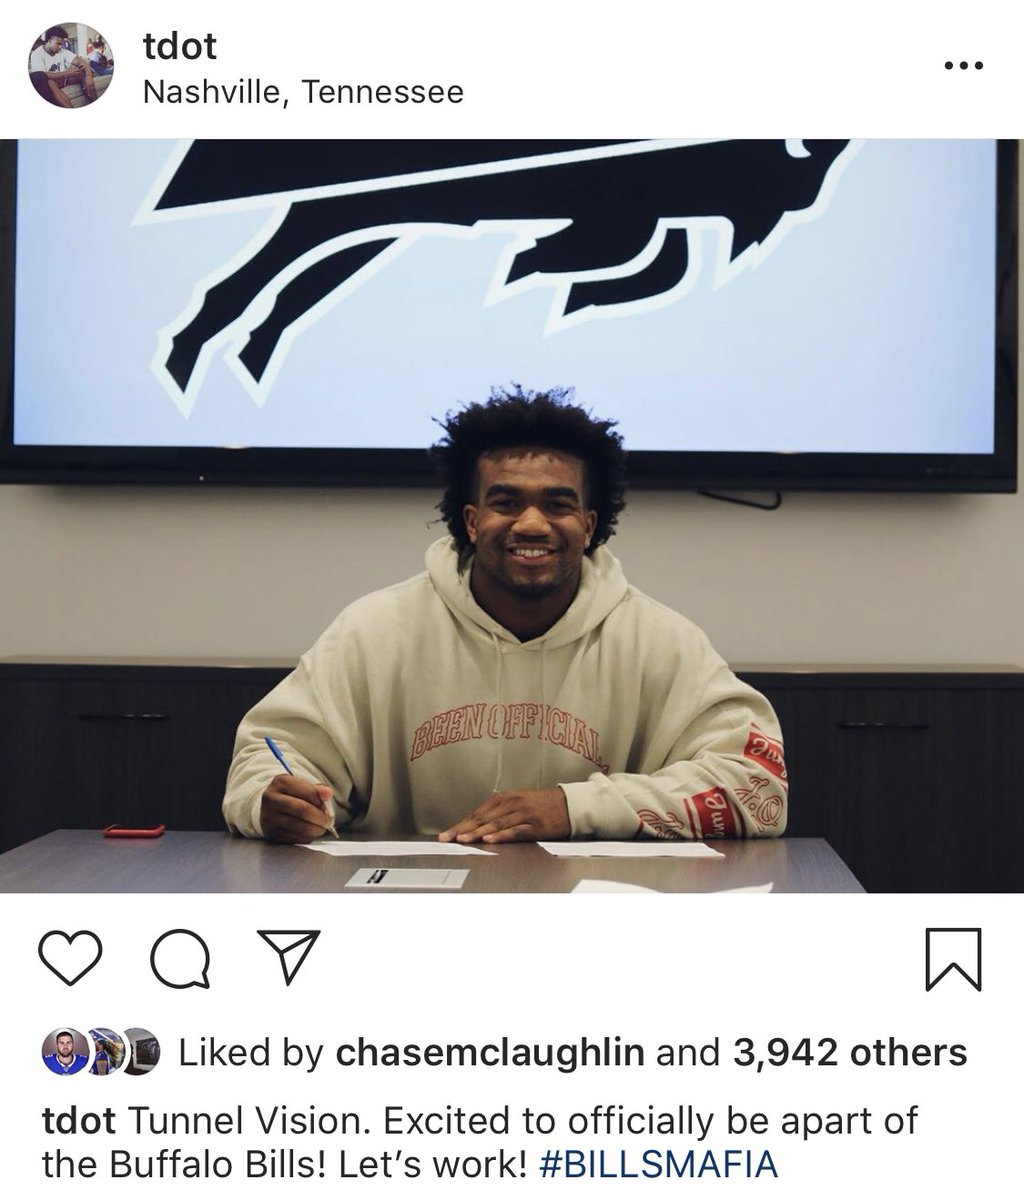 Rookie LB Tyrel Dodson, who was arrested following a domestic violence incident with his GF last month, shares to Instagram that he is excited to officially be a part of the #Bills.